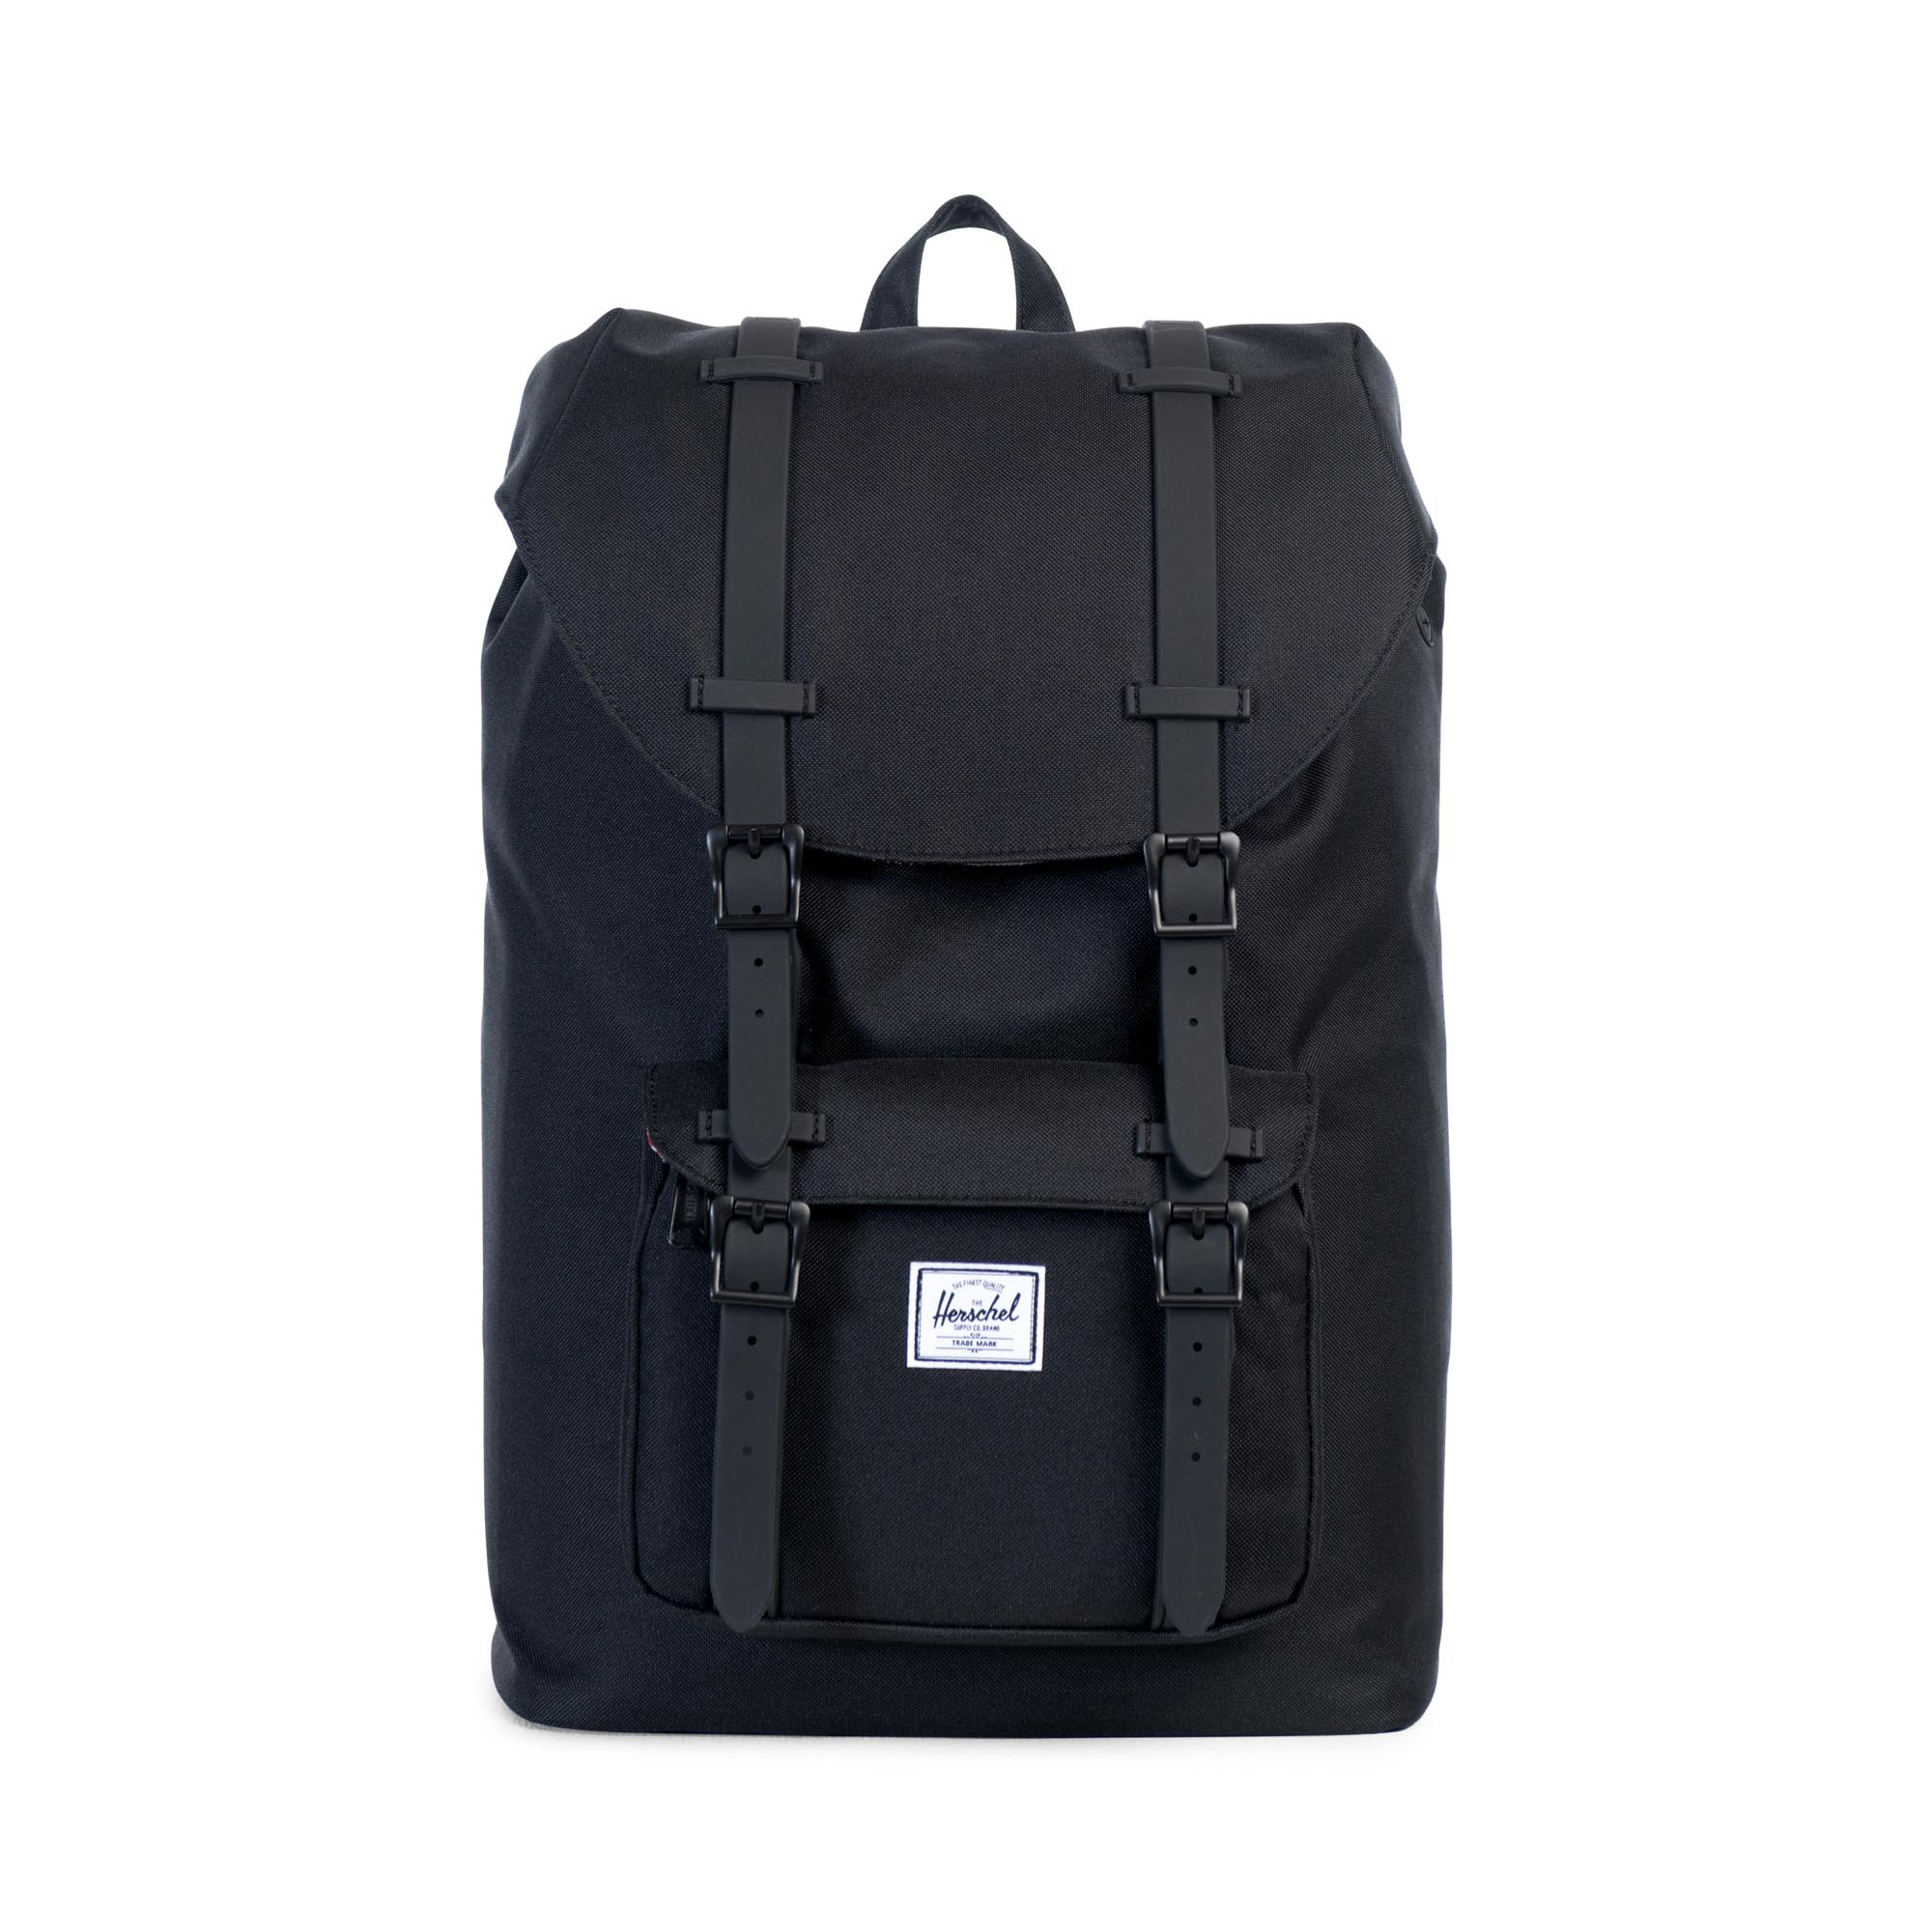 d9f9b52c5 Herschel Little America Backpack Mid-Volume | Herschel Supply Company